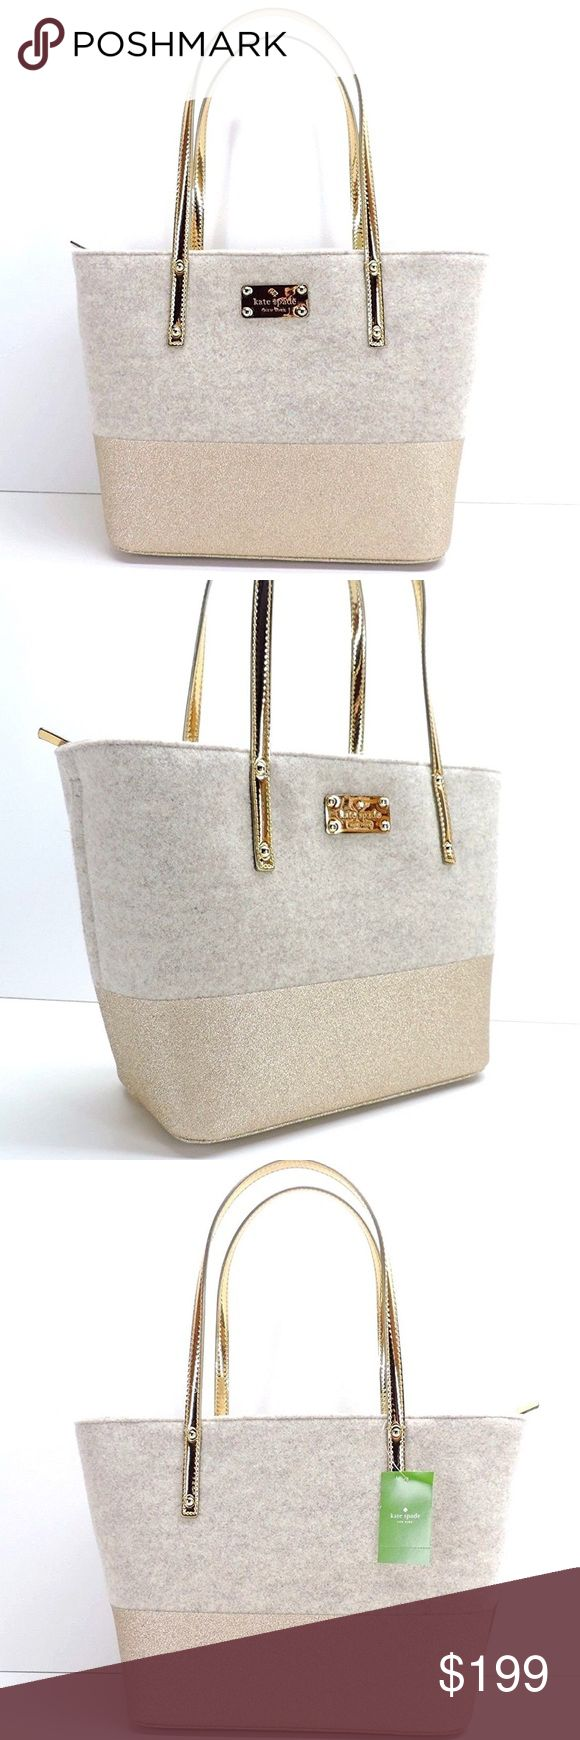 """NWT Kate Spade frosted felt harmony gold/oatmeal Brand new with tags!Description Authentic Kate Spade Frosted Felt Small Harmony in oatmeal frosted felt with gold sparkle accents and gold metallic faux leather trim. Features & details Measurements: 9.8"""" H x 5.5"""" D x 11.4"""" L Drop: 9"""" Interior Description: Tote- unlined felt, wristlet lining -Capital kate jacquard Exterior Details: Embossed Kate Spade New York logo plate, goldtone hardware kate spade Bags Totes"""